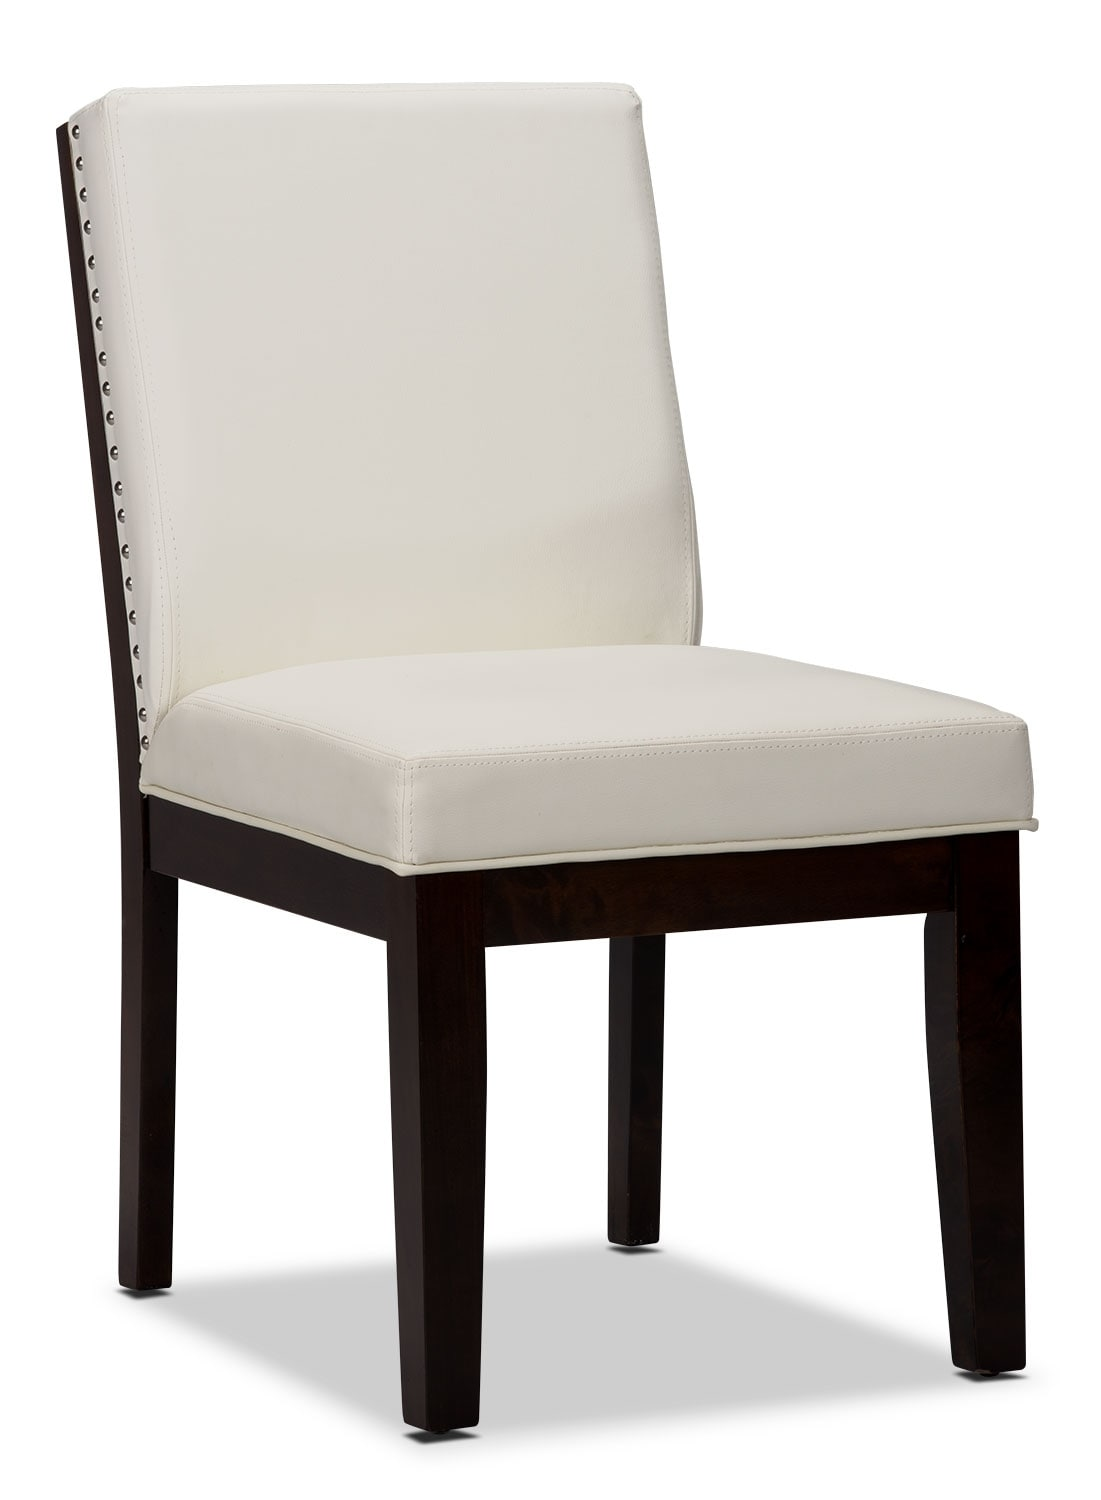 Couture side Chair - White